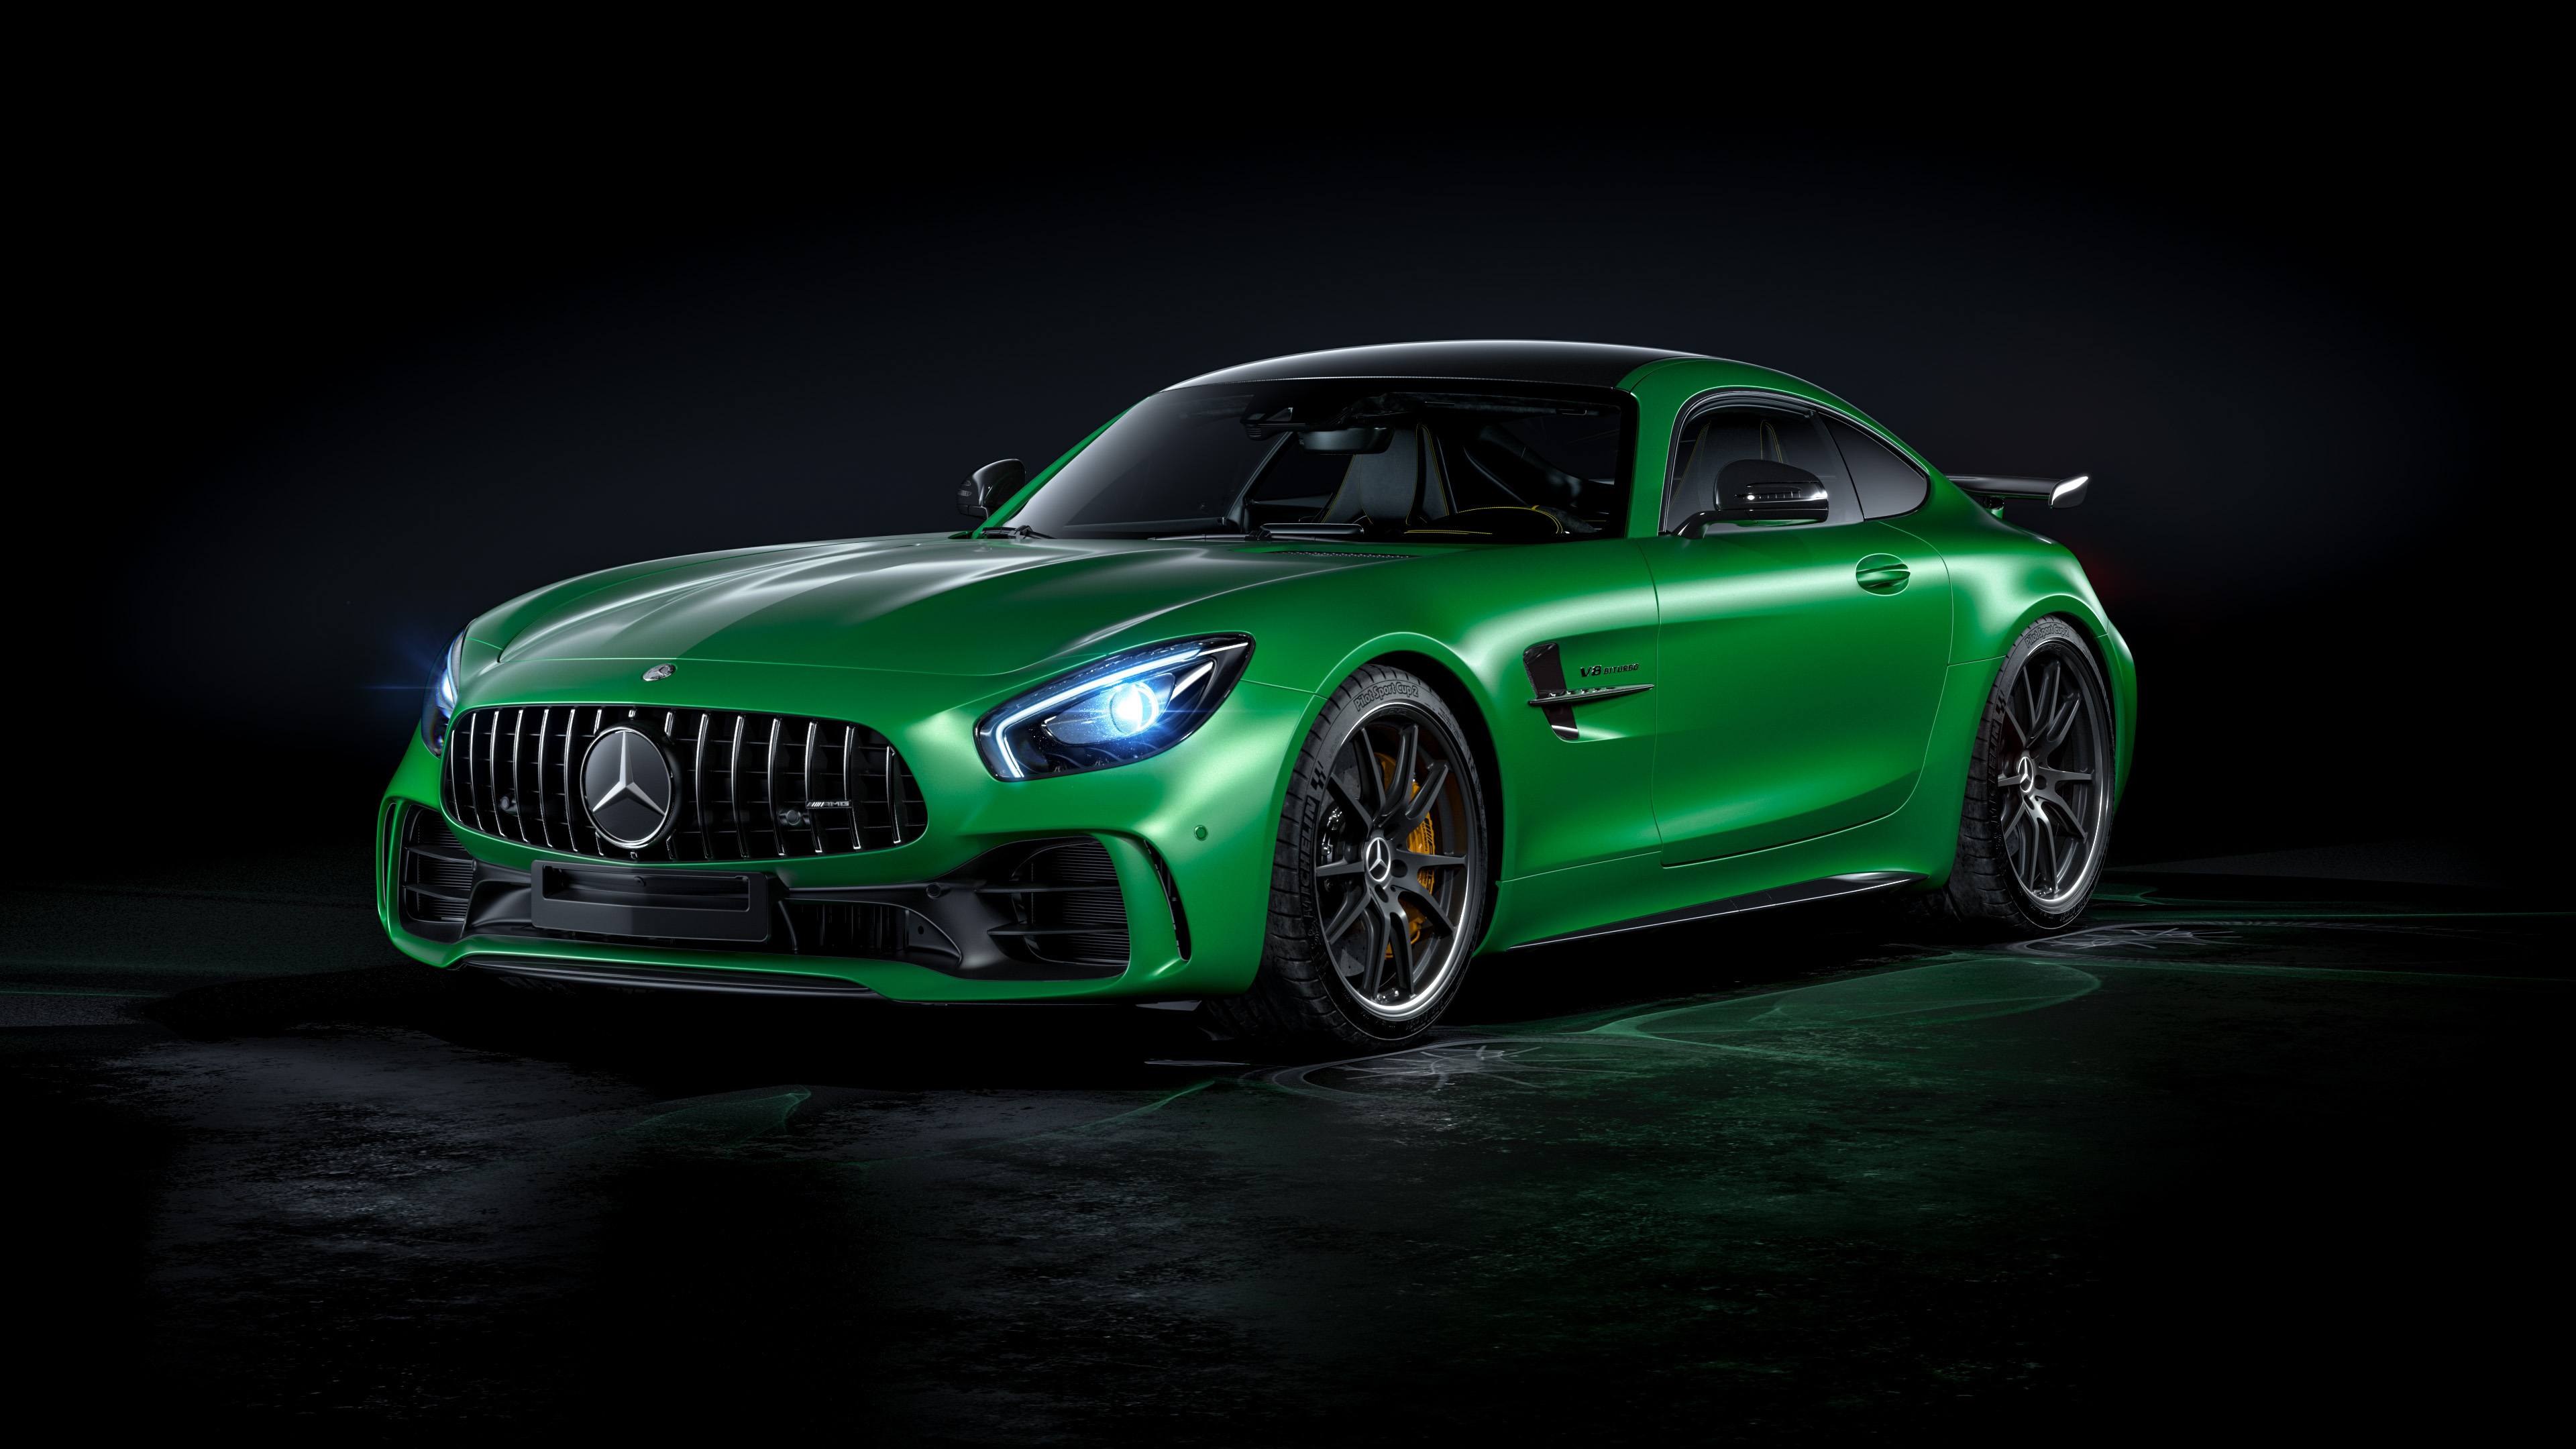 Wallpaper 4k Mercedes Benz Amg Gtr 4k 4k Wallpapers Behance